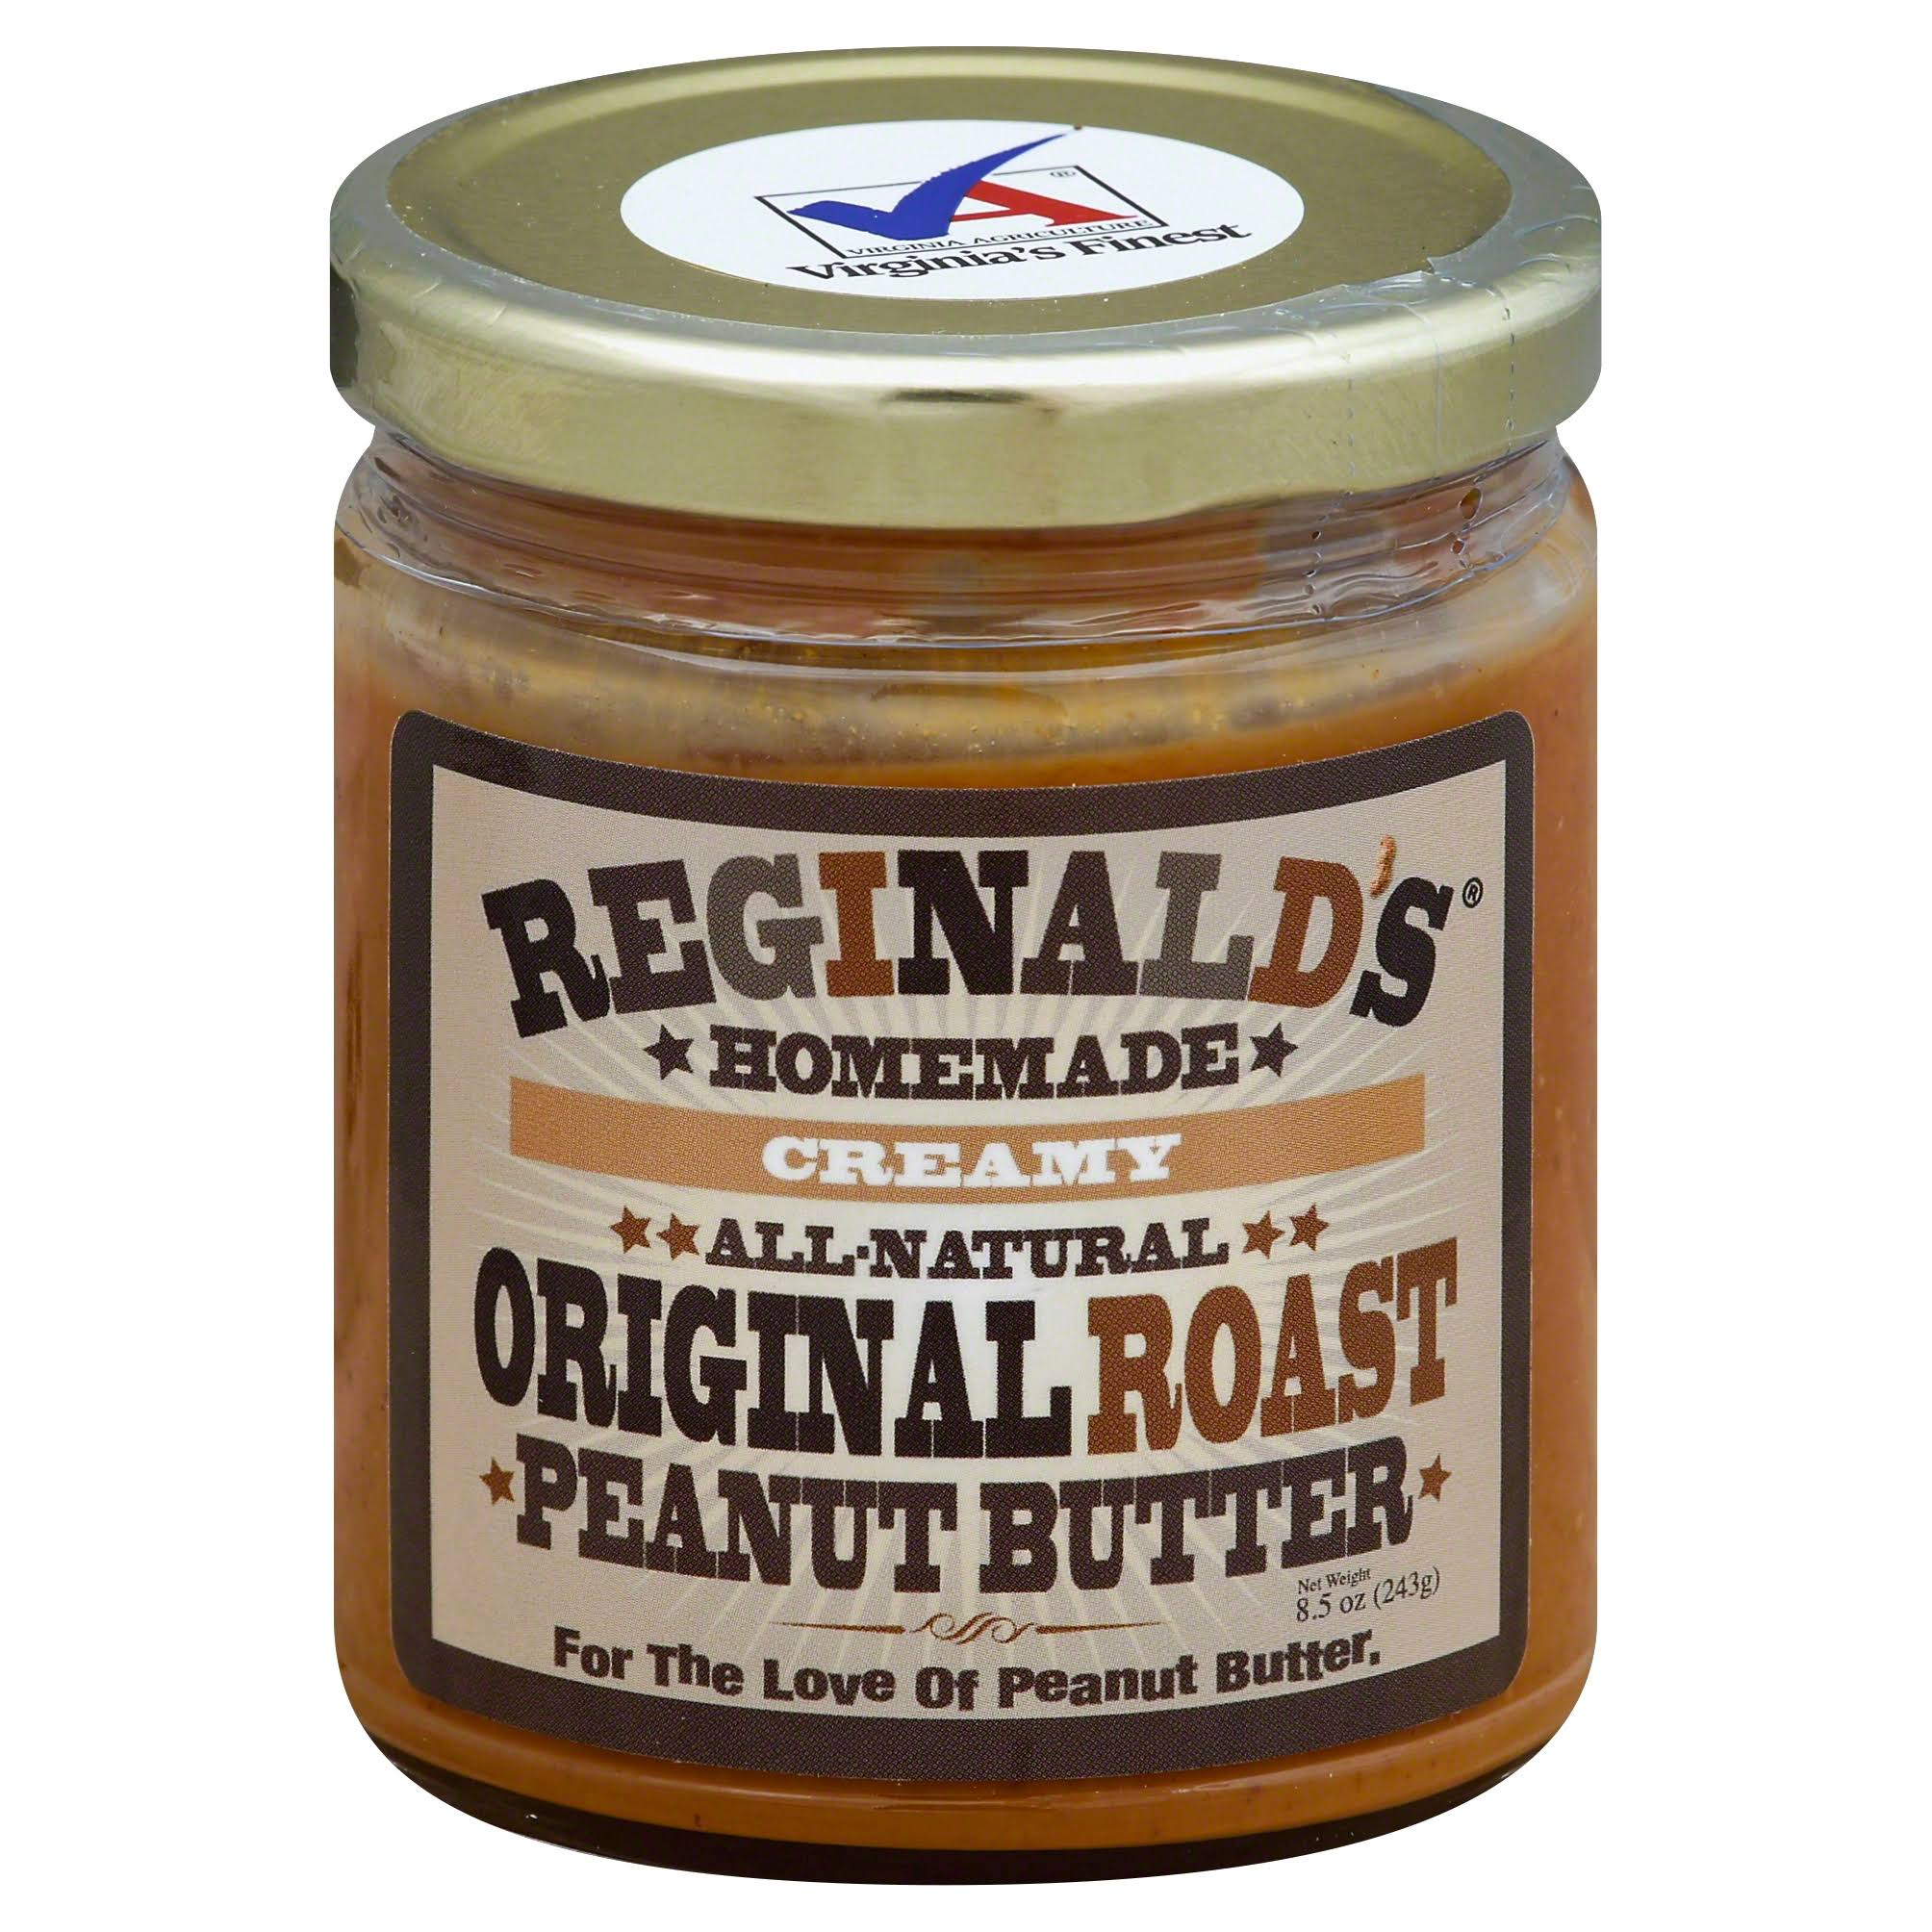 Reginalds Homemade Peanut Butter, Creamy, Original Roast - 8.5 oz